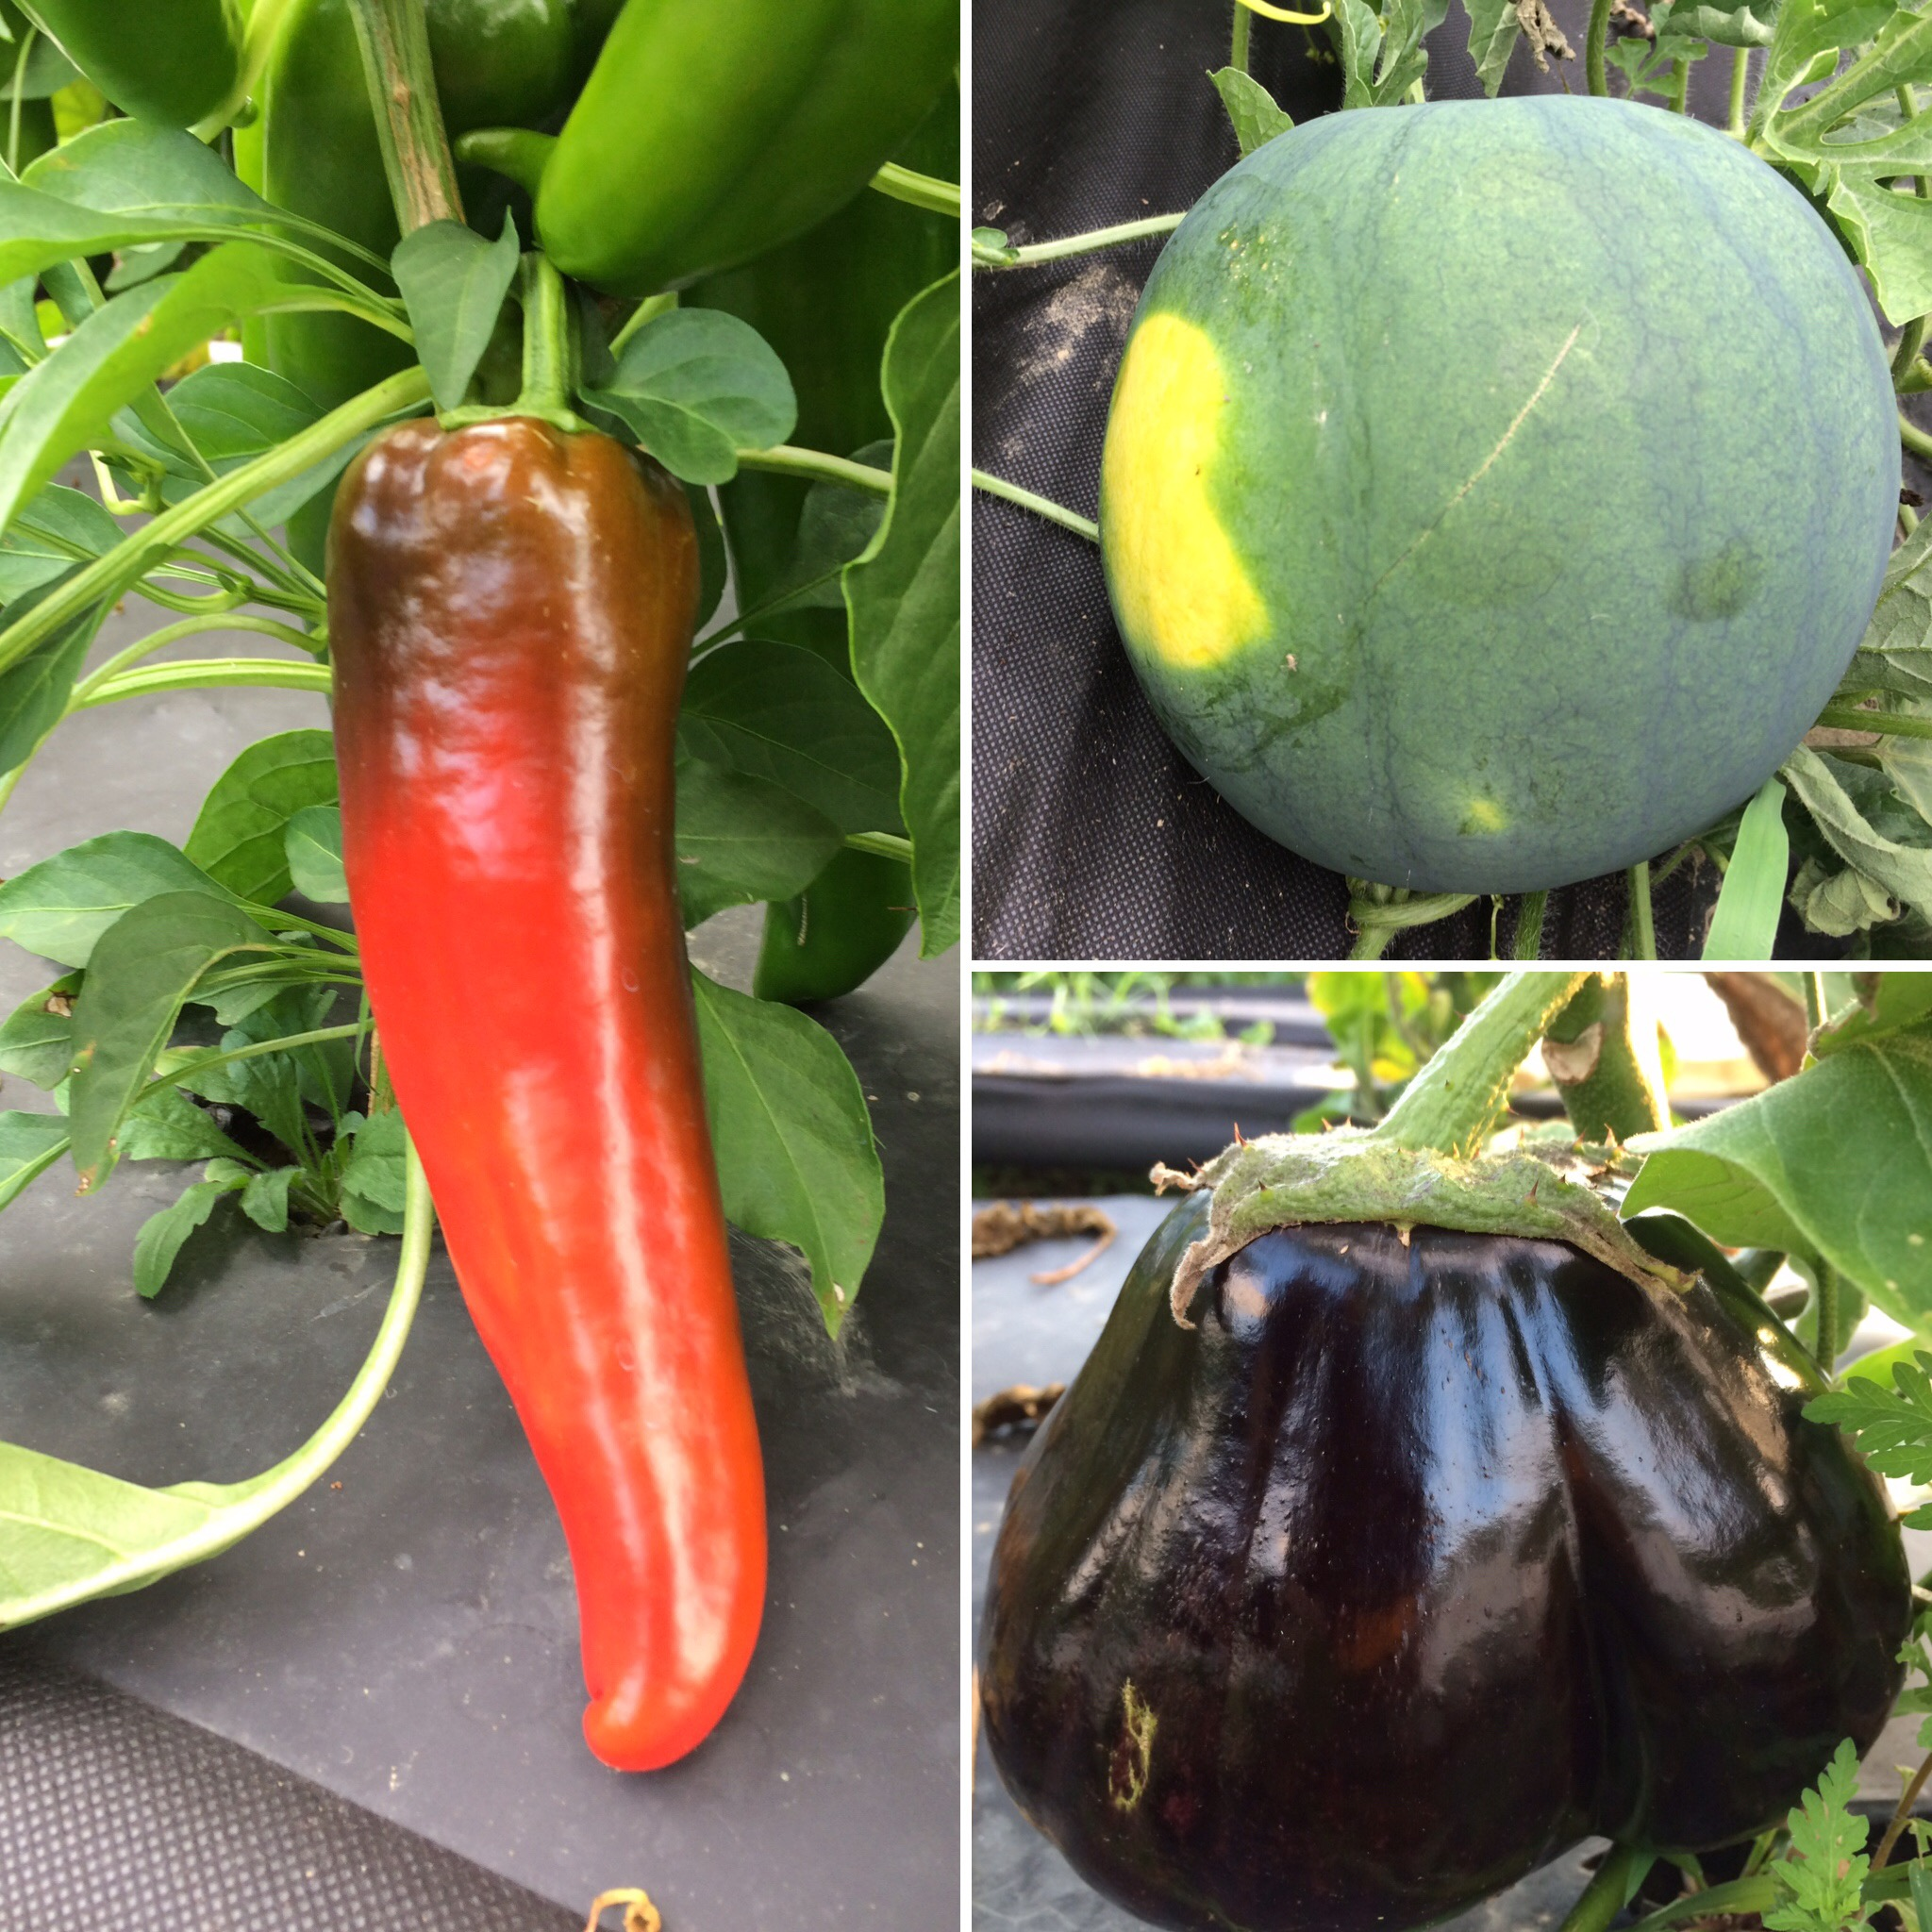 Peppers turning red, melons ripening, and lots of eggplant this week!